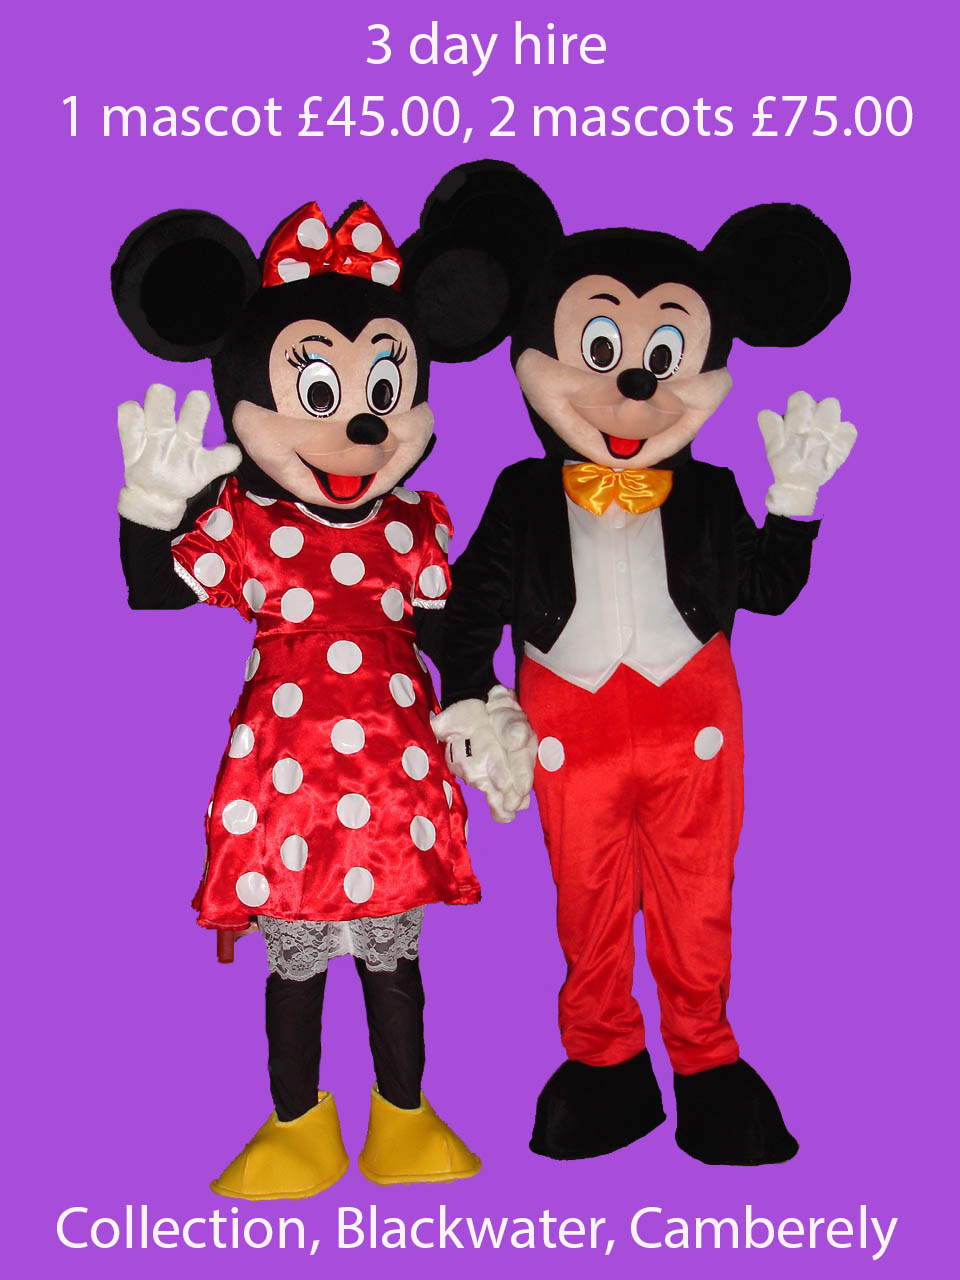 Birthday Party Mascot Costume Hire Childrens Entertainer